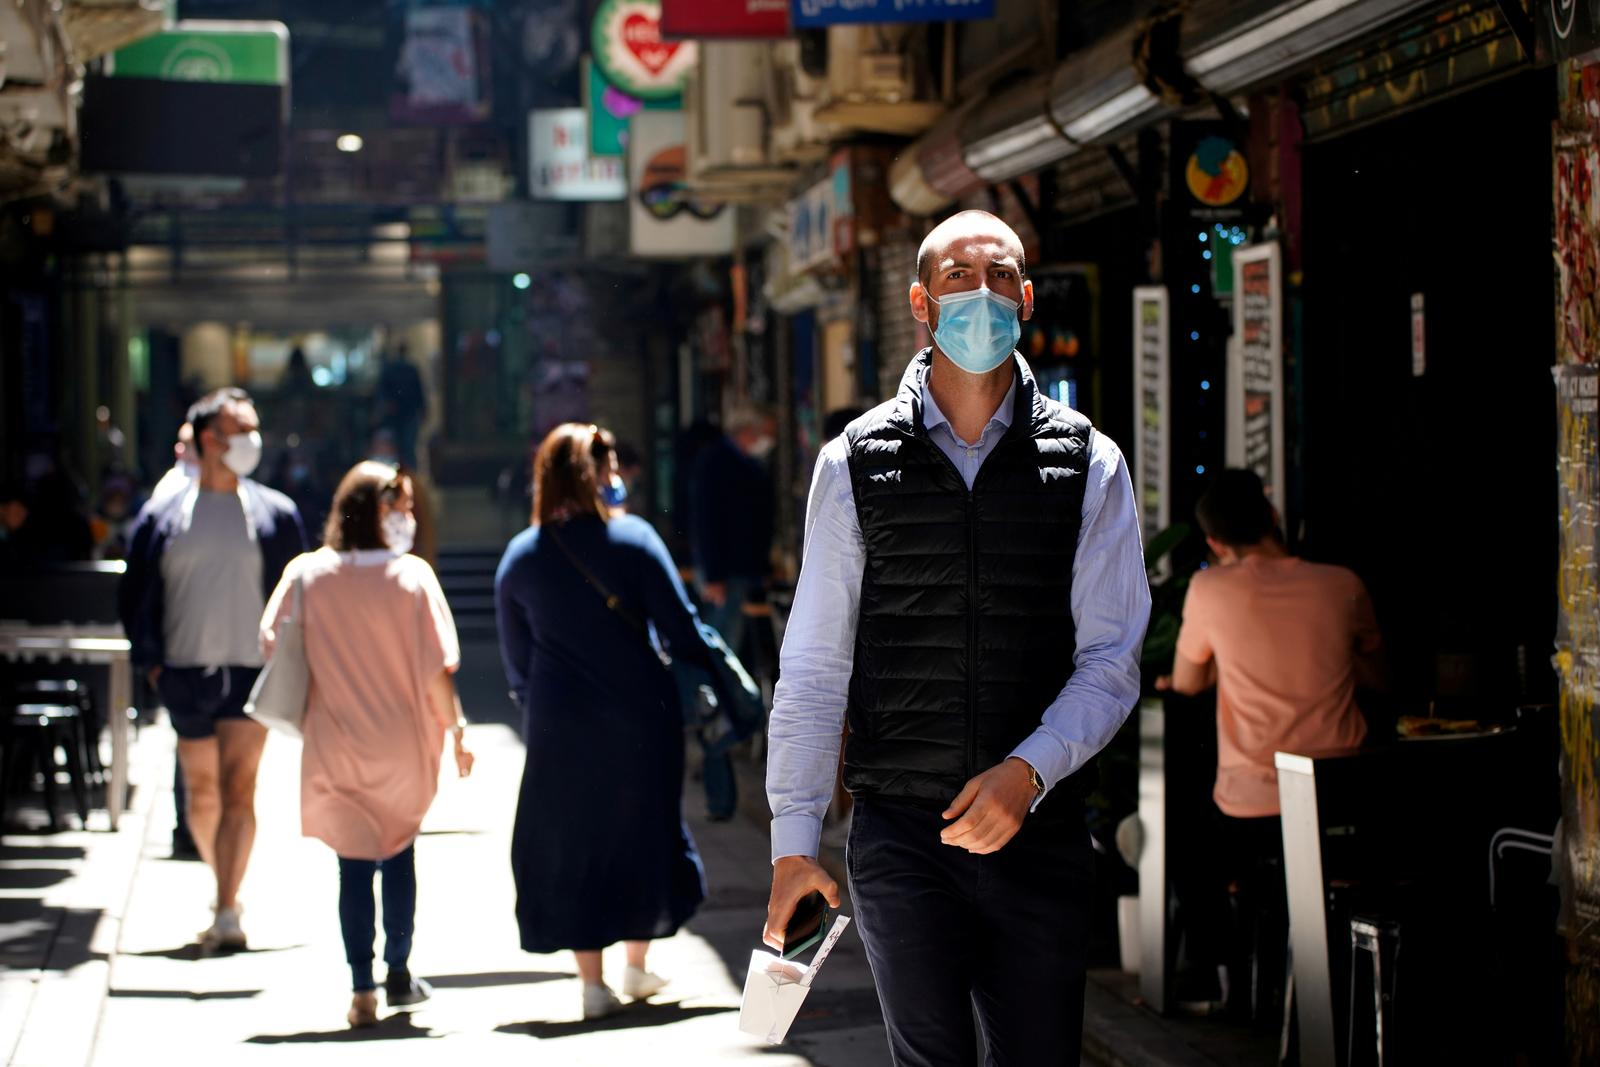 Australia's virus cluster expands further as masks made compulsory